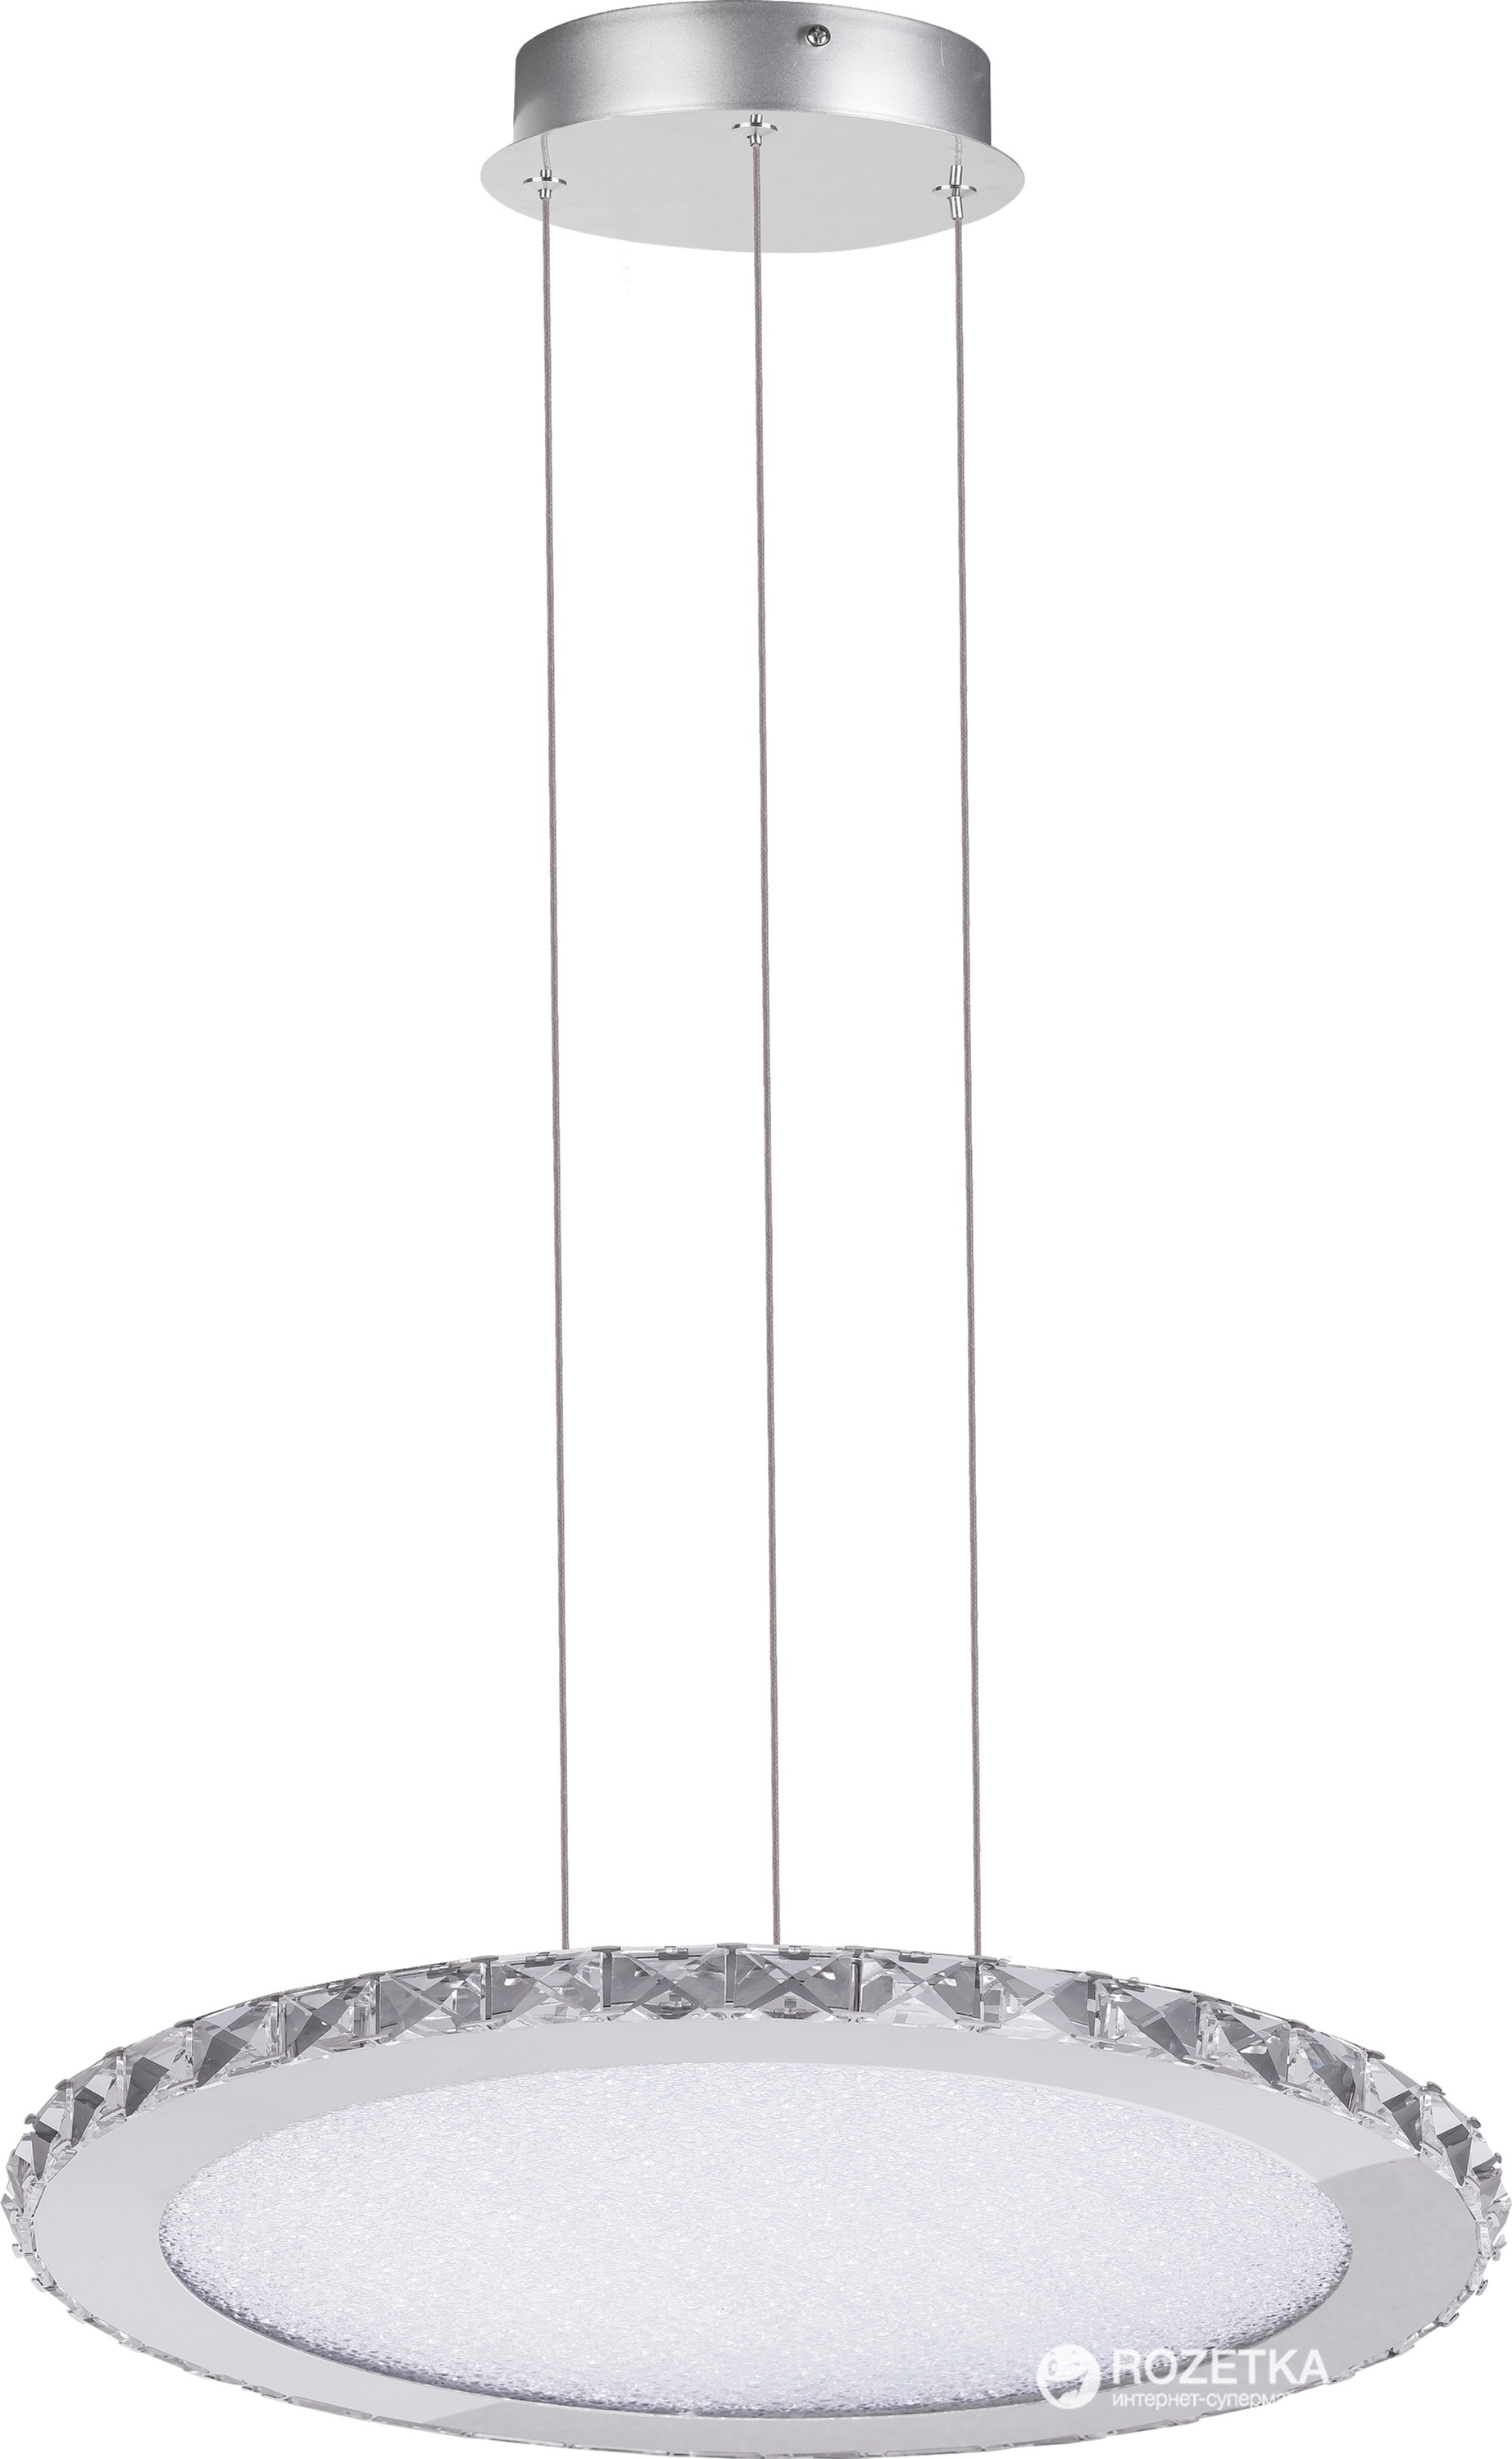 Люстра Rabalux Emma LED 21.6W IP20 (RA-2453)